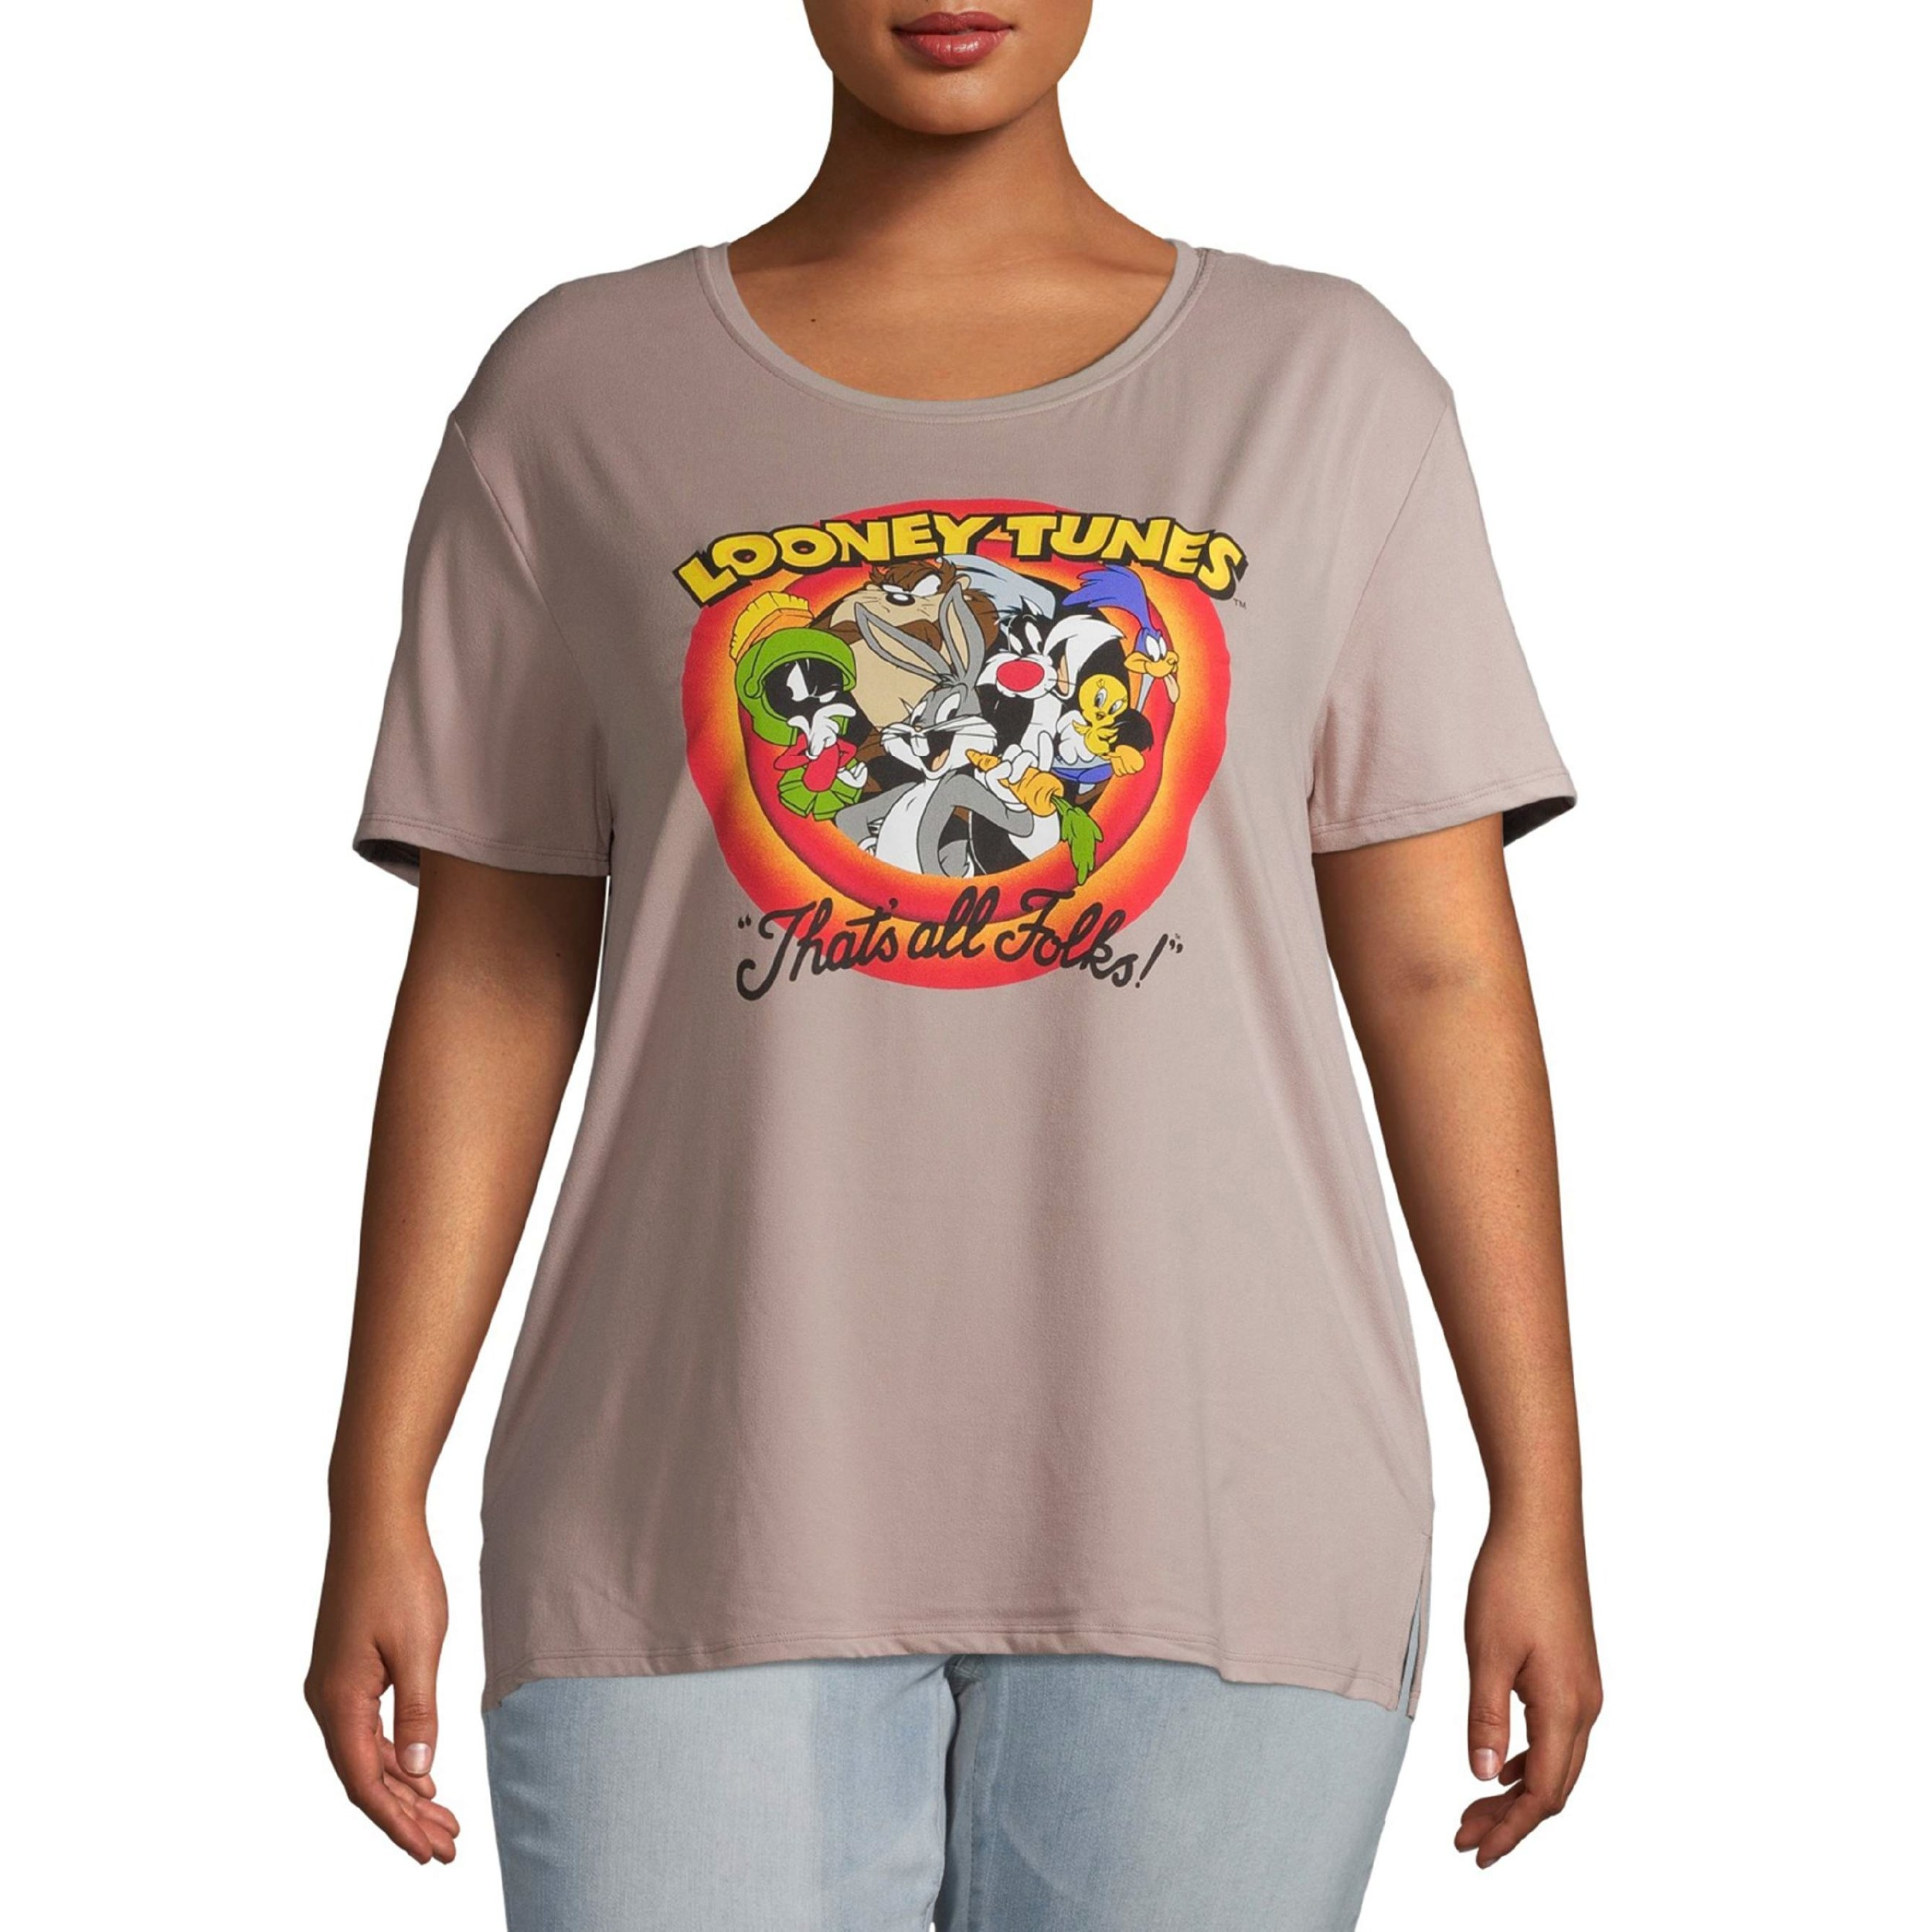 The Looney Toons logo T-shirt